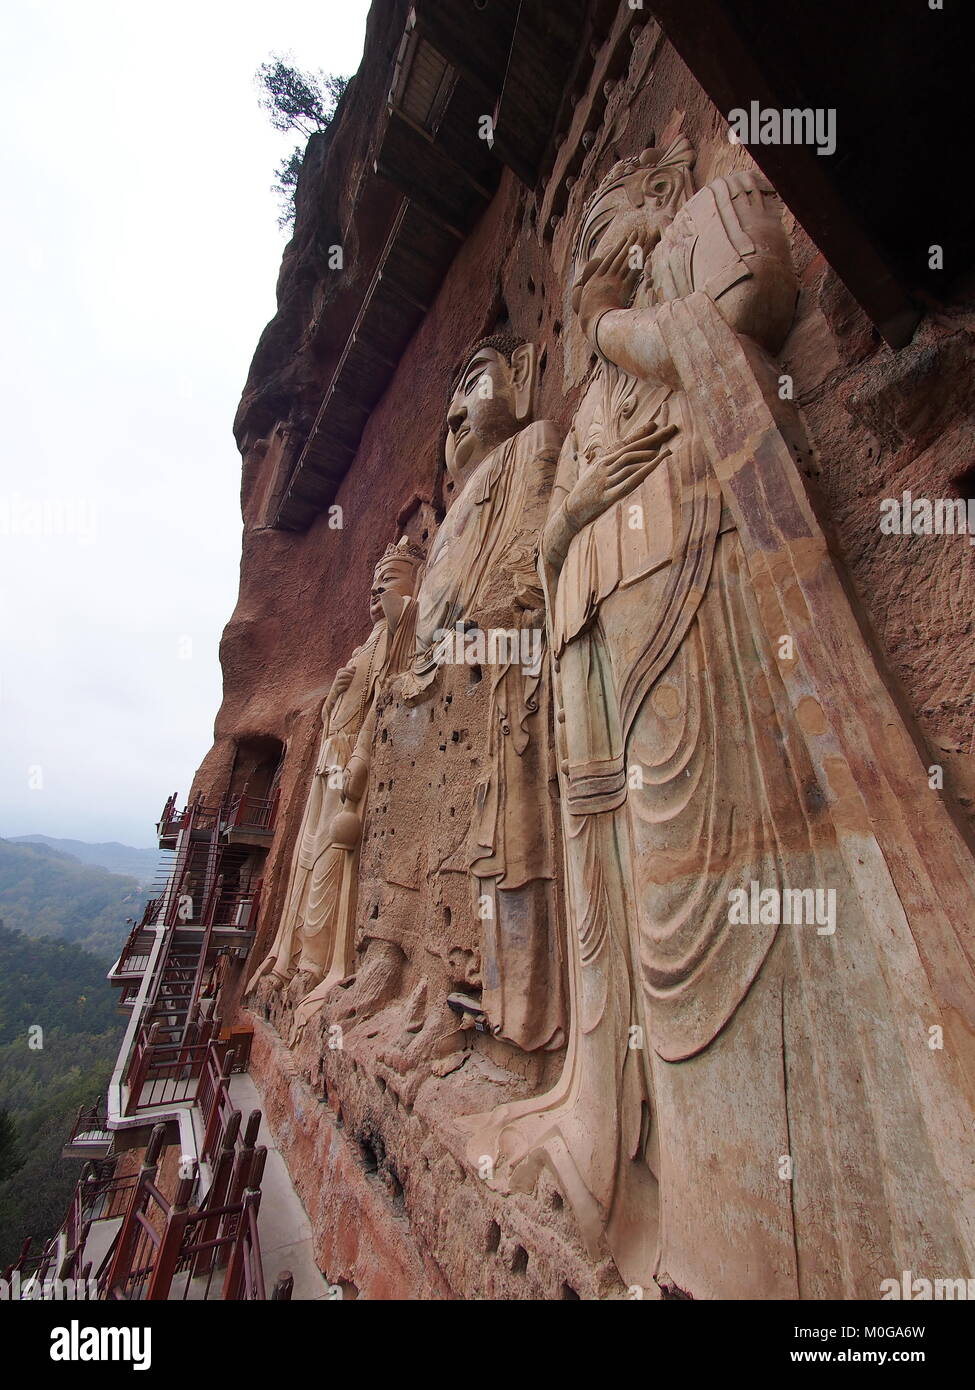 Maiji Shan Stone Mountain with ancient buddhist carving statue. Travel in Tianshui, Gansu, China. In 2013, October - Stock Image